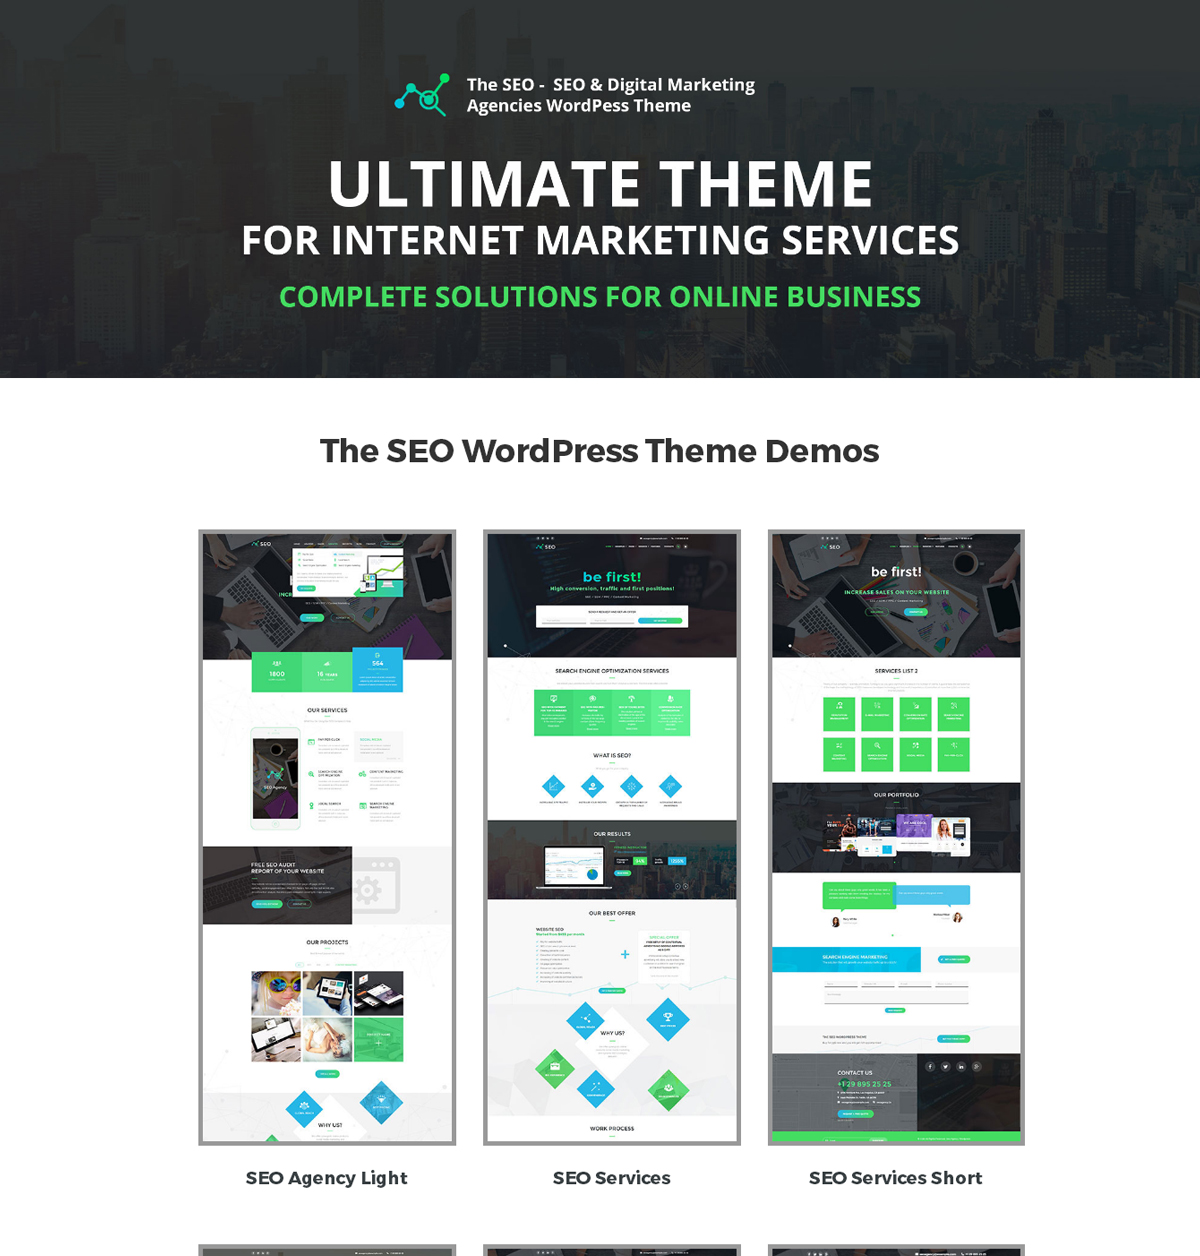 The SEO Marketing Agency WordPress Theme